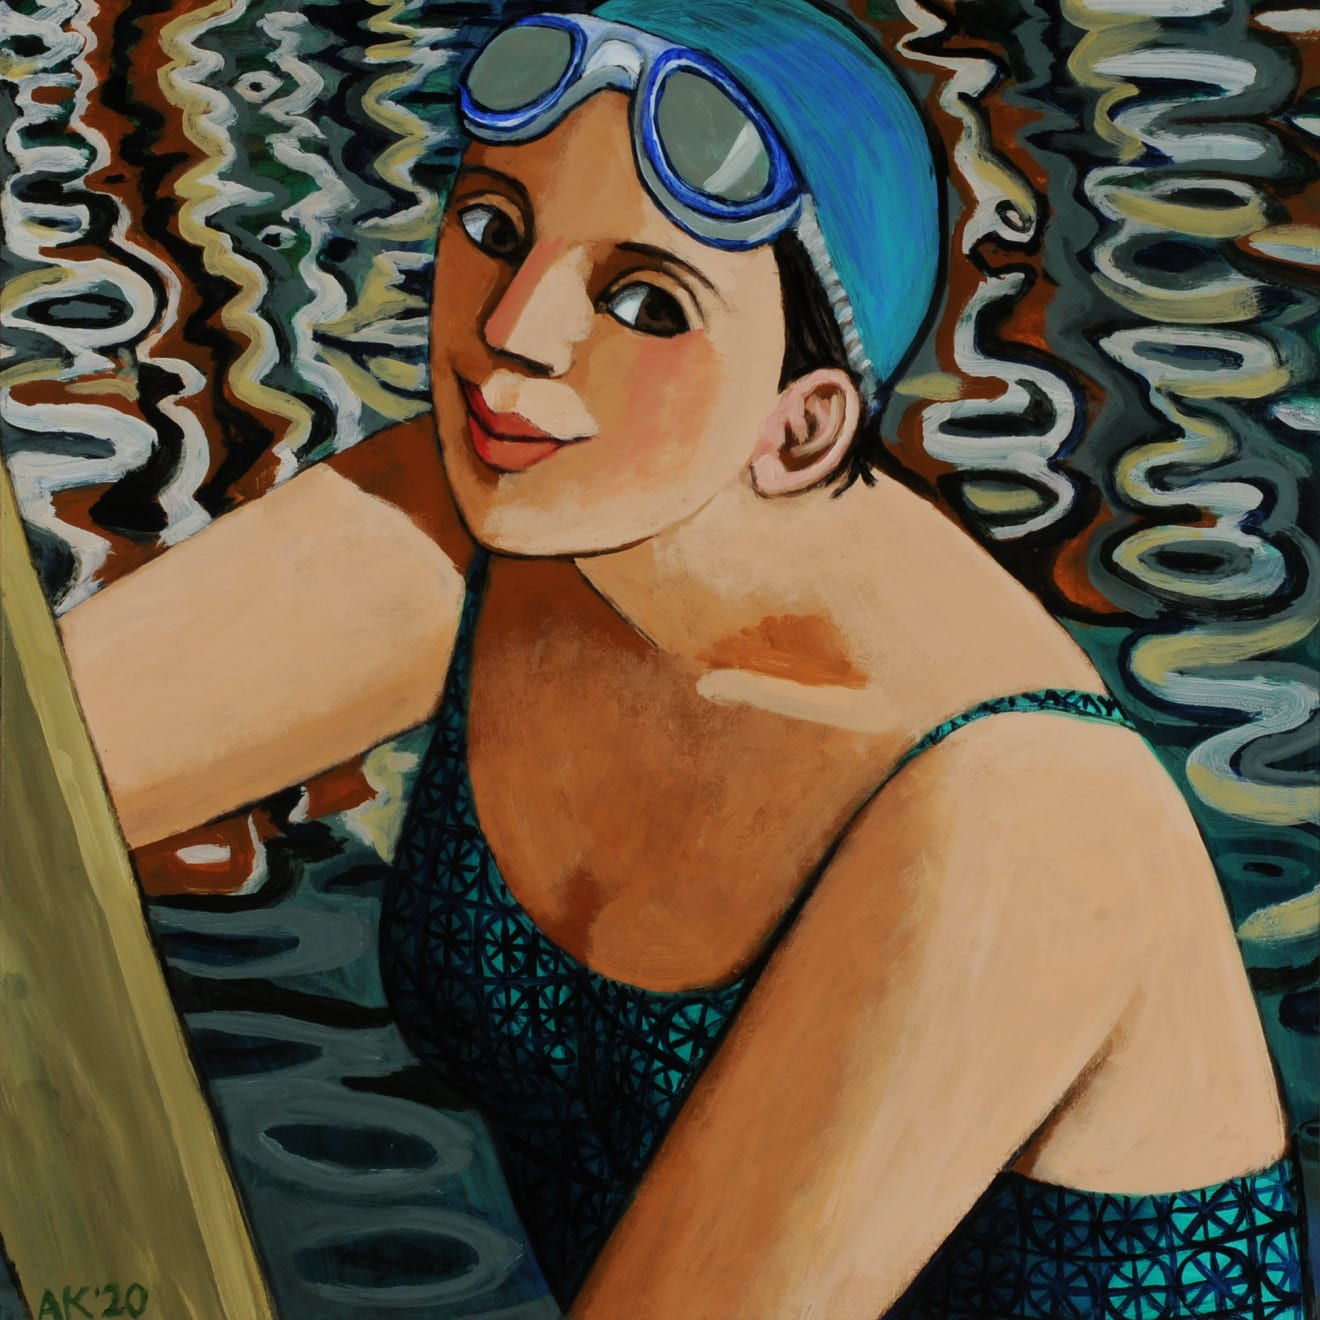 Anita Klein, Reflections in the Dock, 2020